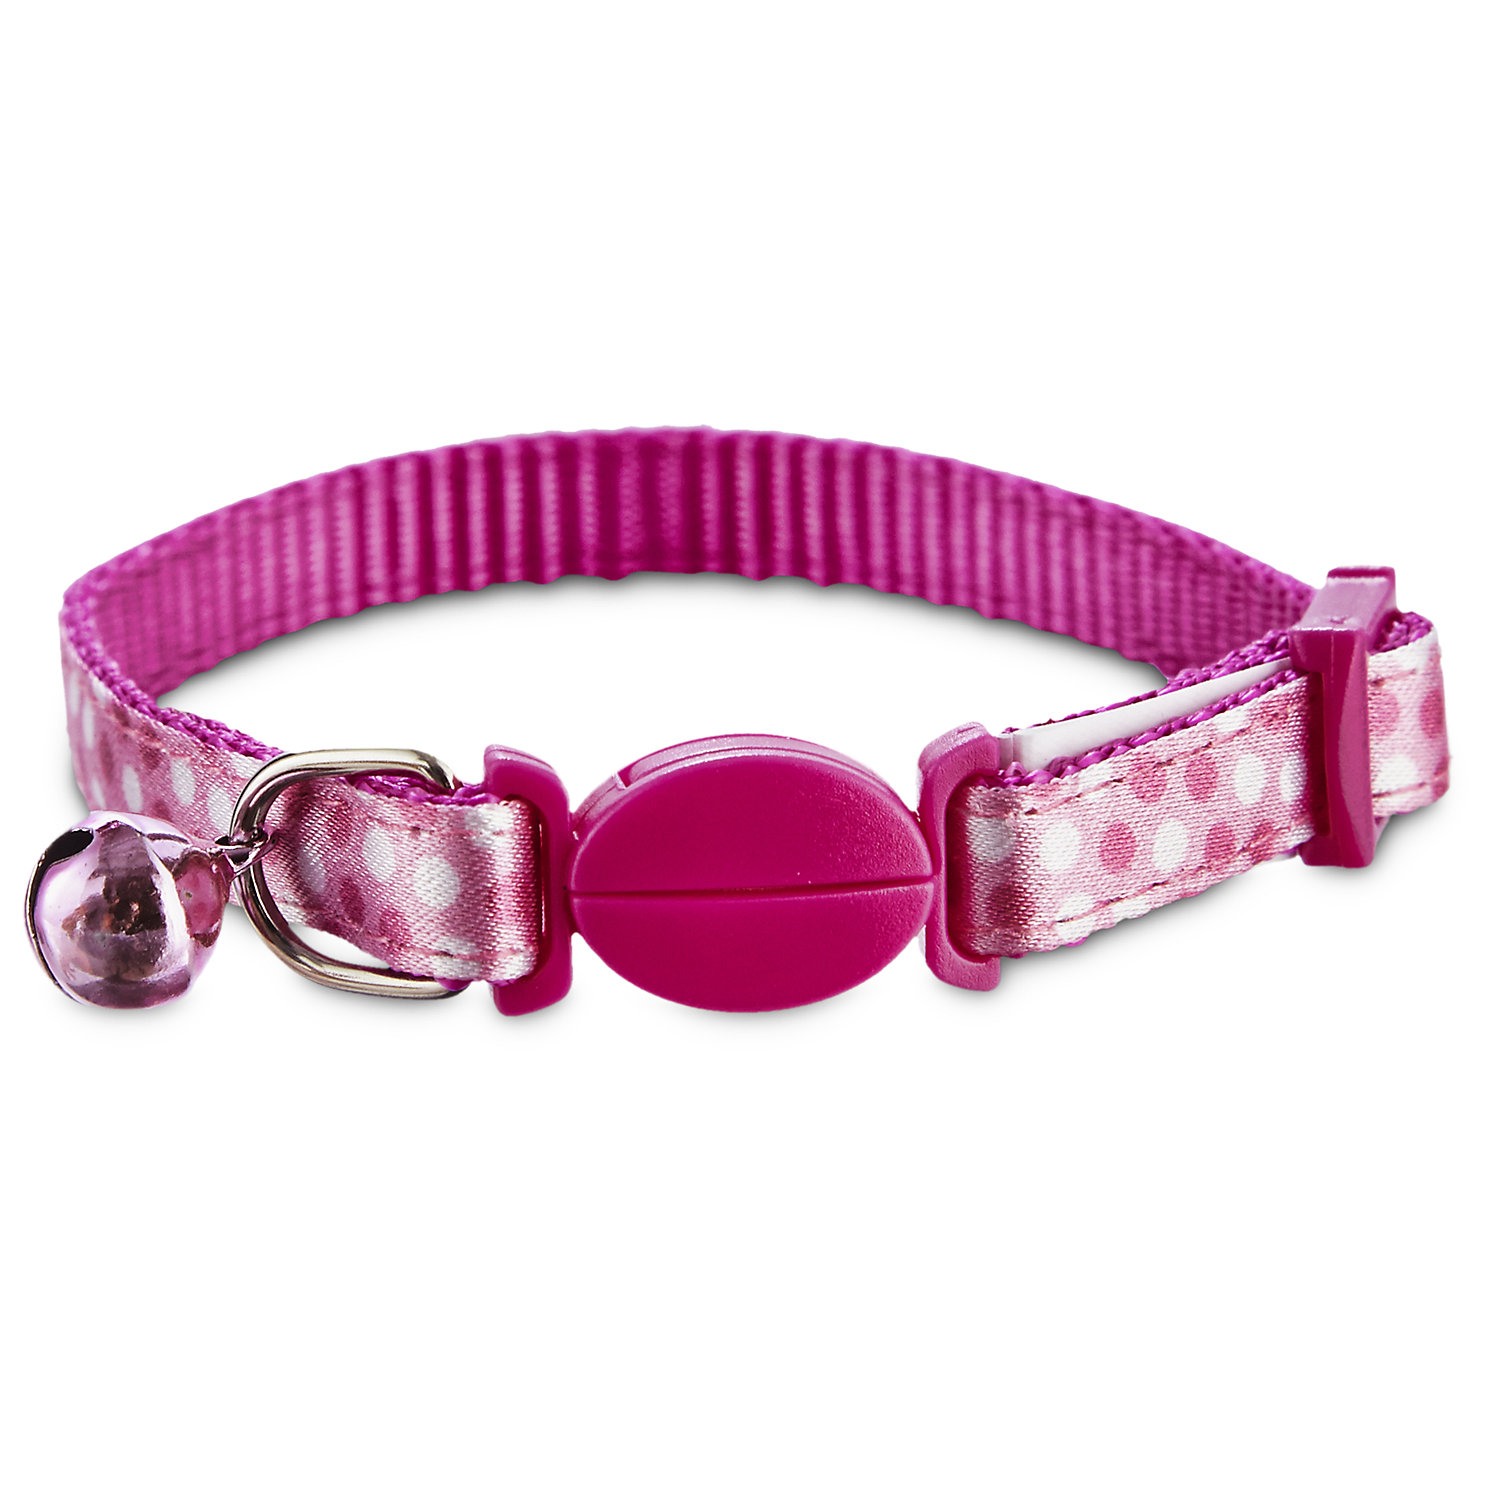 Bond & Co Dotty Print Kitten Collar, One Size Fits All, Pink